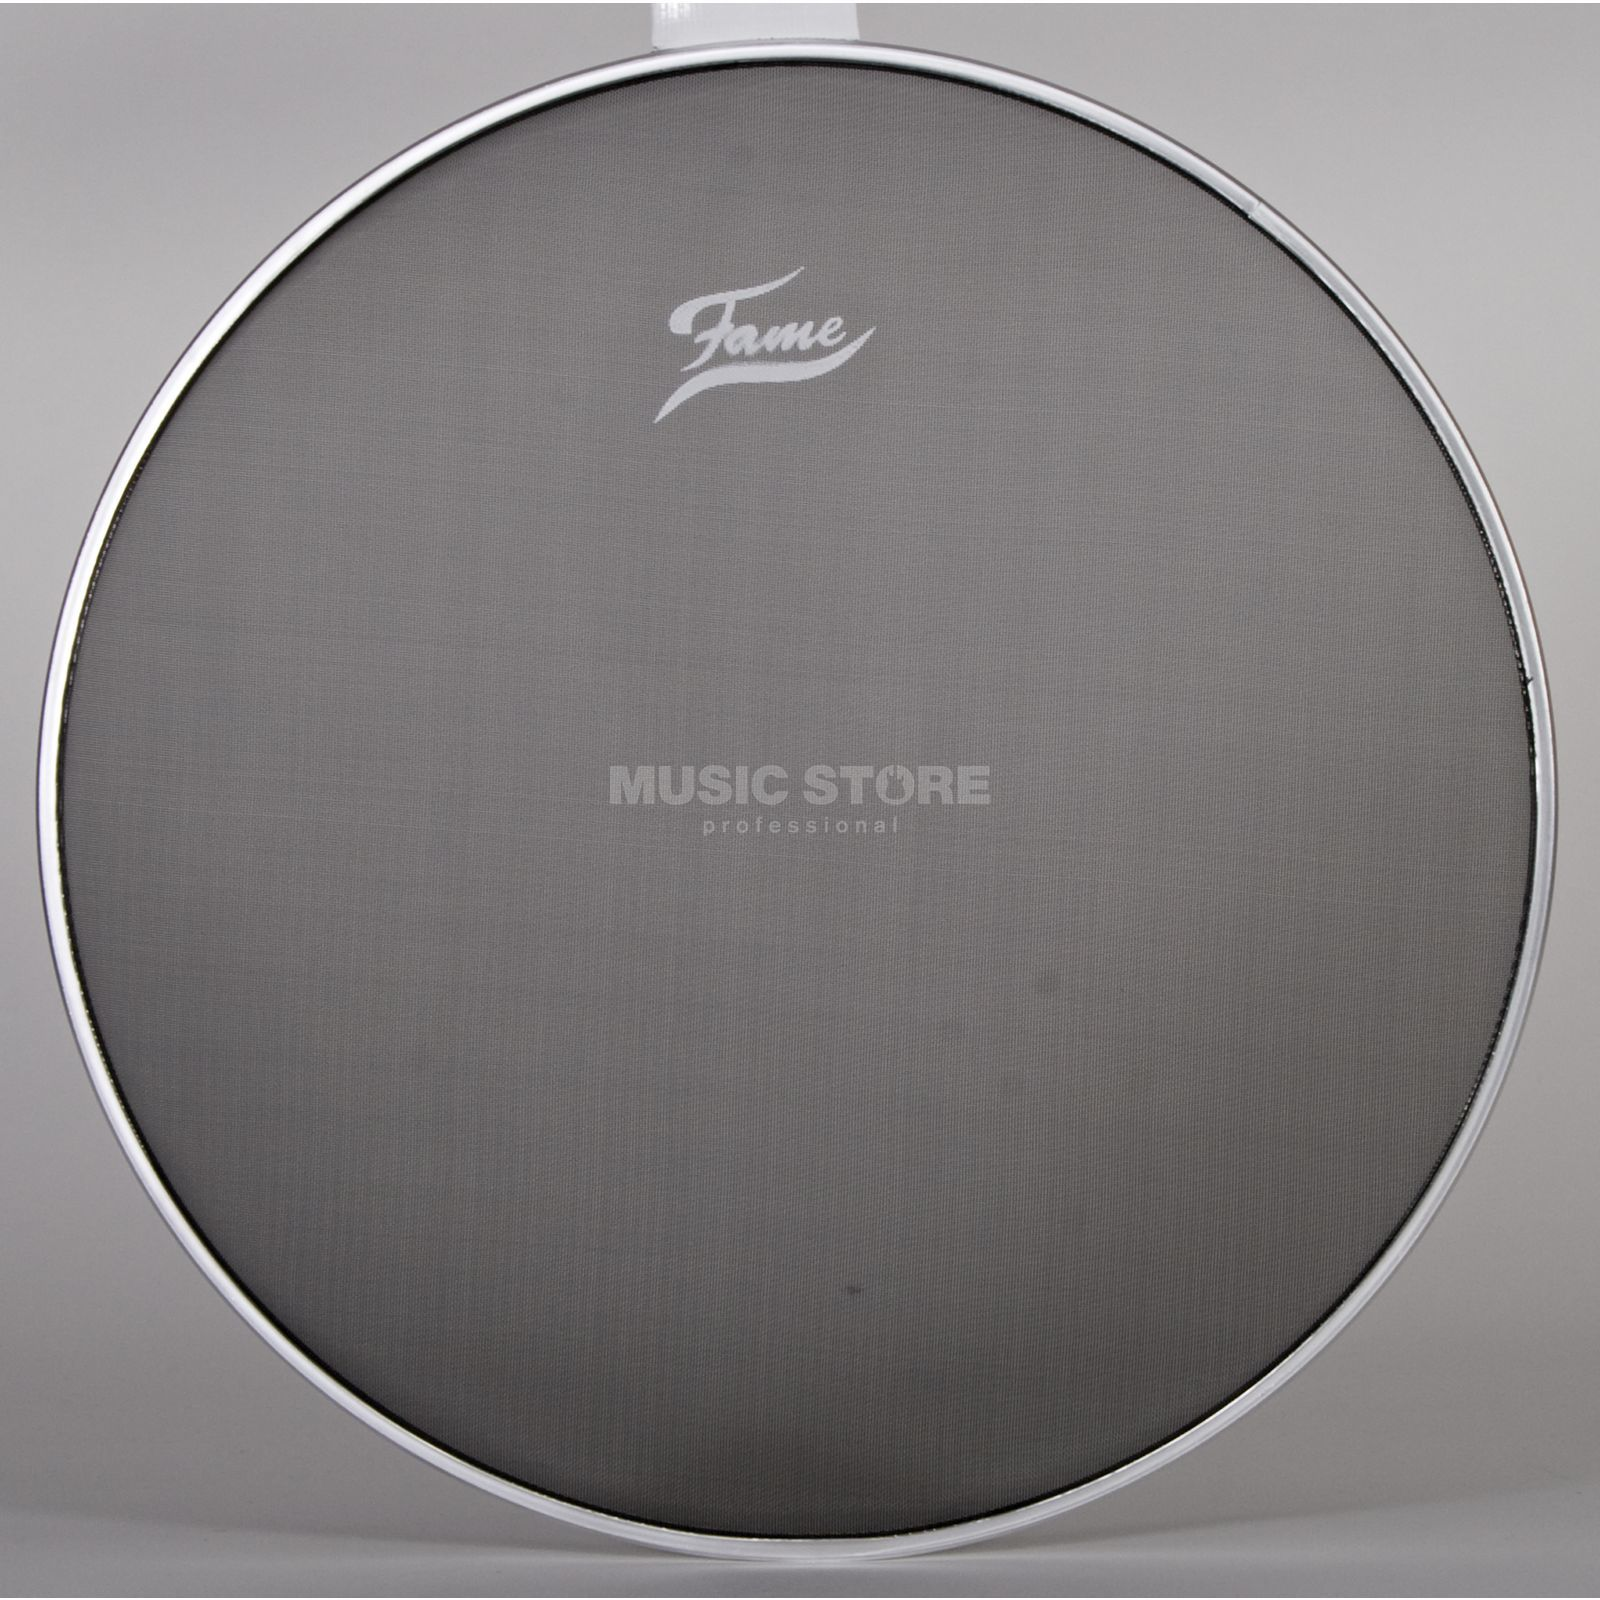 "Fame Mesh Head 10"", black Product Image"